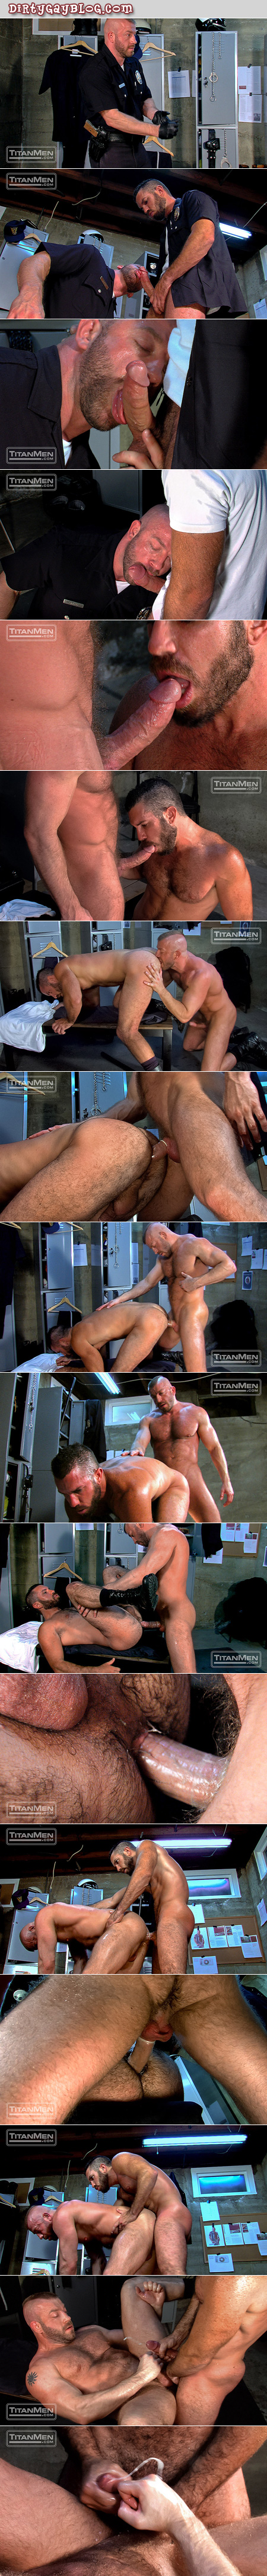 Hairy muscle men in cop uniforms take turns sucking and fucking in the locker room.